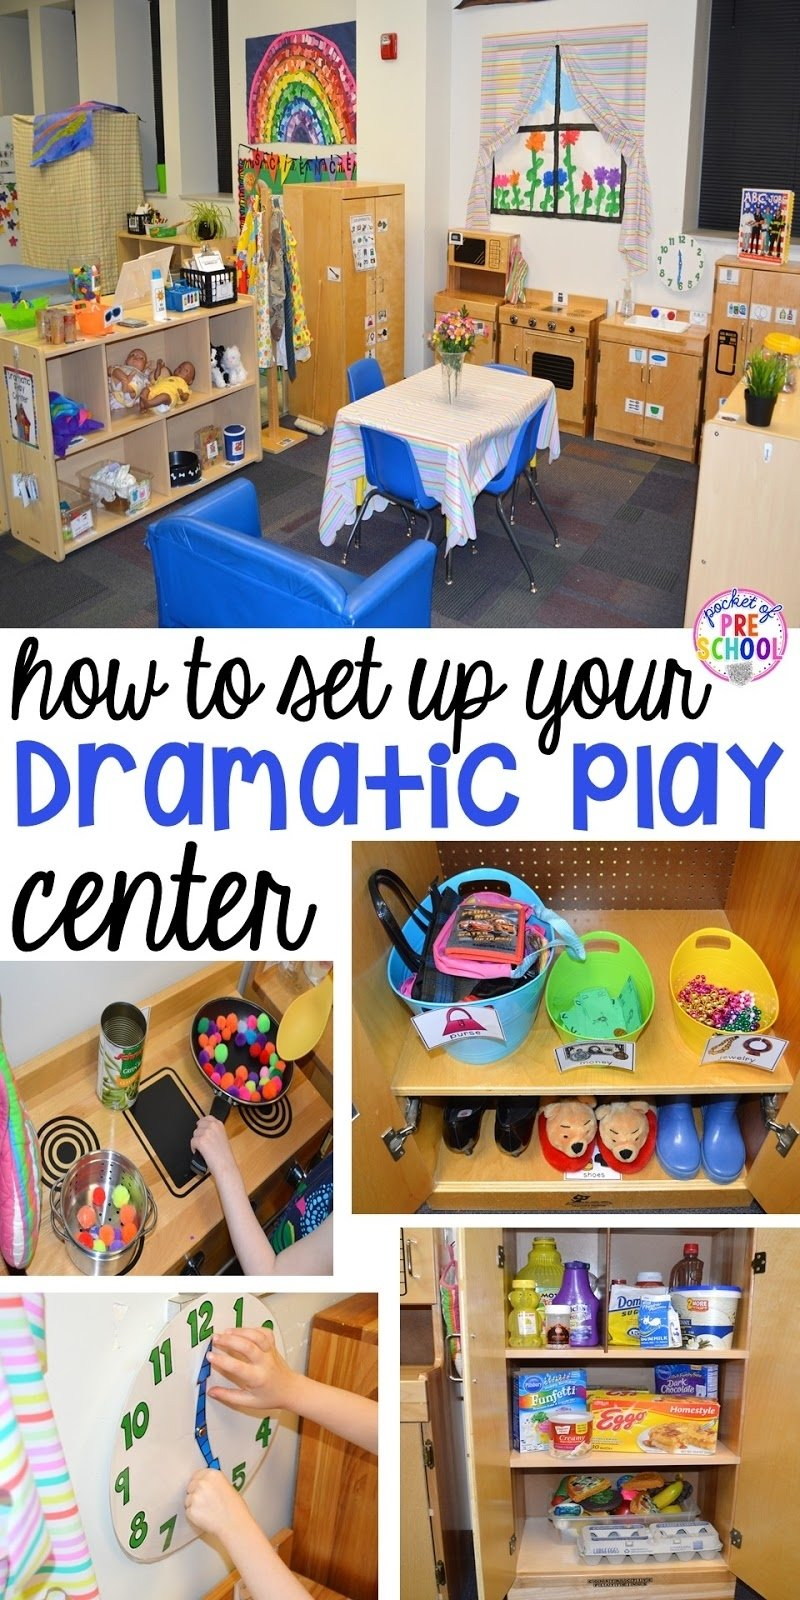 10 Pretty Dramatic Play Ideas For Toddlers how to set up the dramatic play center in an early childhood 1 2021